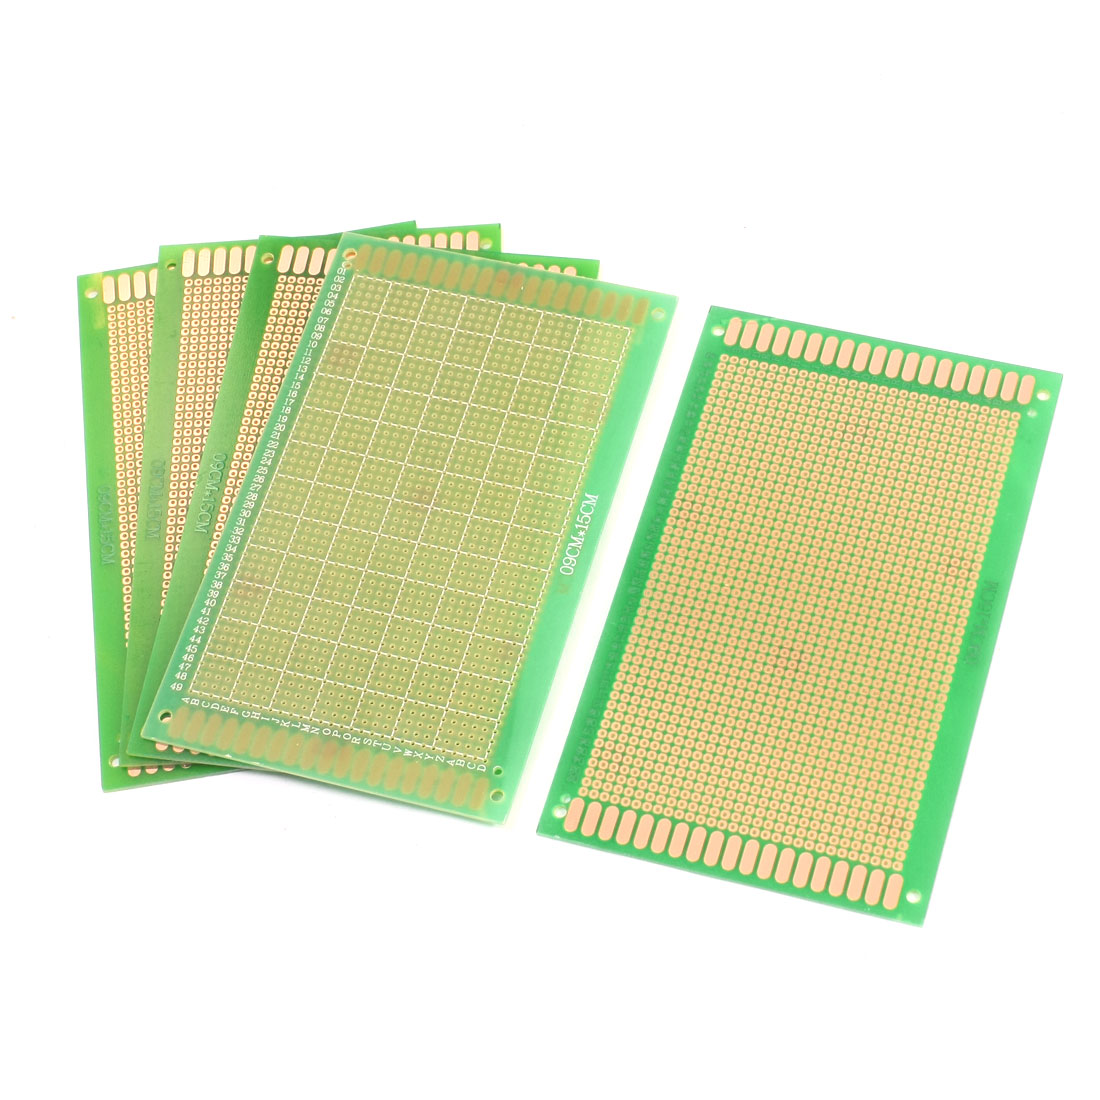 5Pcs Universal Single Side Prototype Matrix Copper Plated Carbon Fiber PCB Board 15cm x 9cm